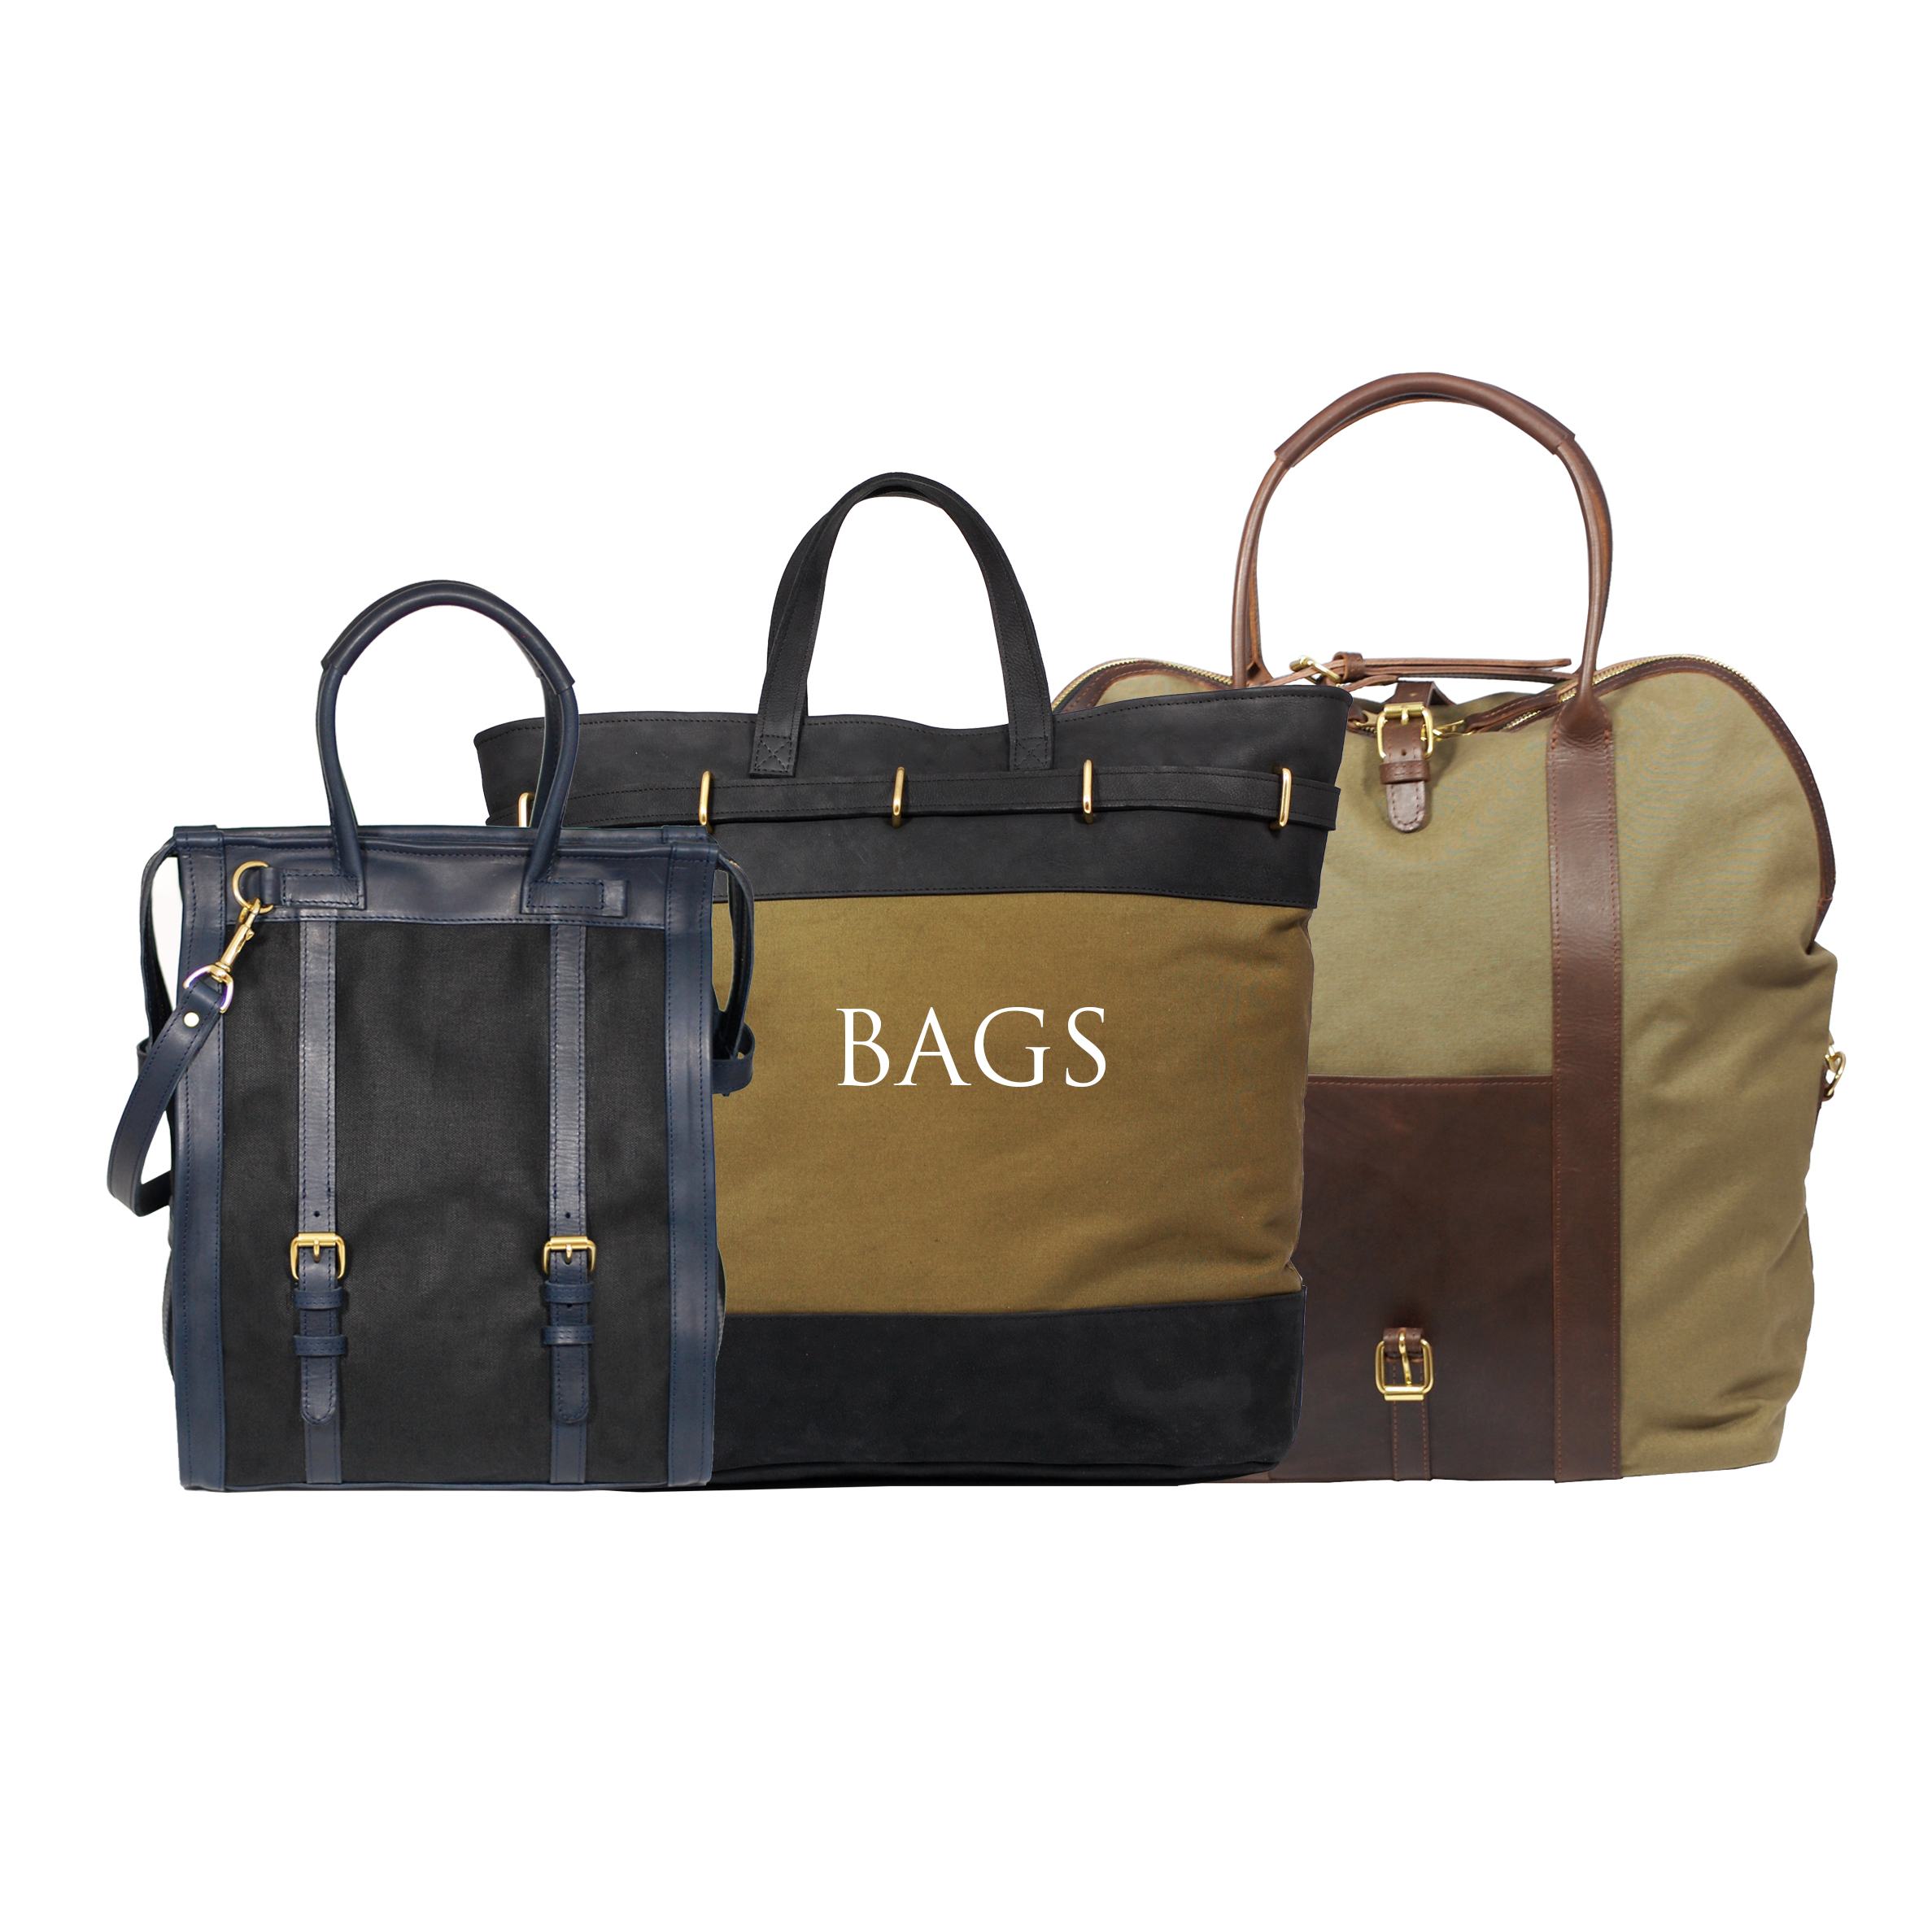 Luxury and functional bags in canvas and leather and leather goods with brass fittings perfect for everyday use travel and weekend getaways www.mahiout.com